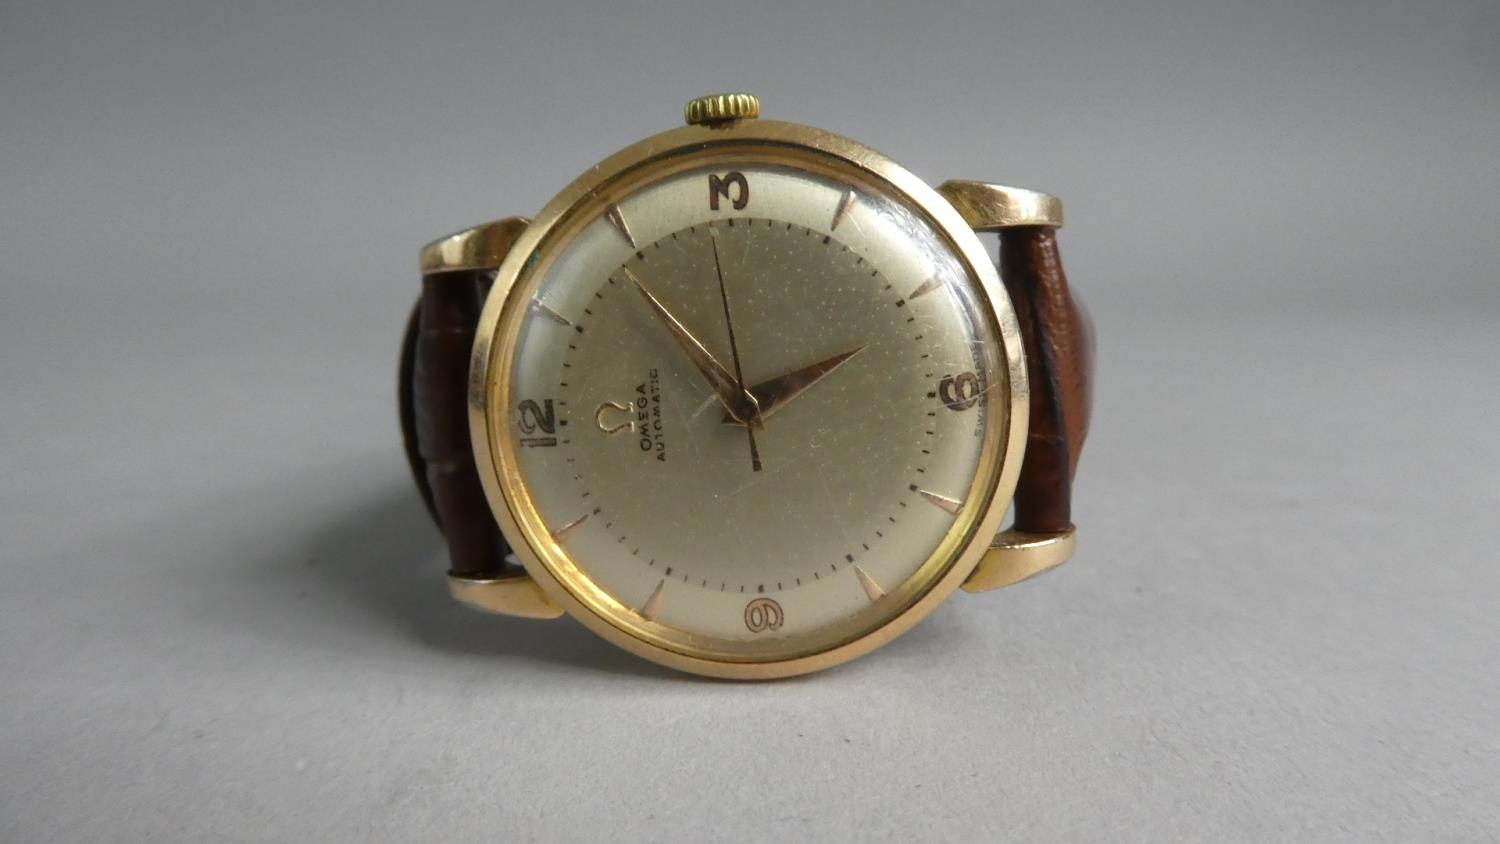 Lot 333 - A Vintage Gold Plated Omega Automatic Gents Wrist Watch, Champagne Face with Arabic Numerals and